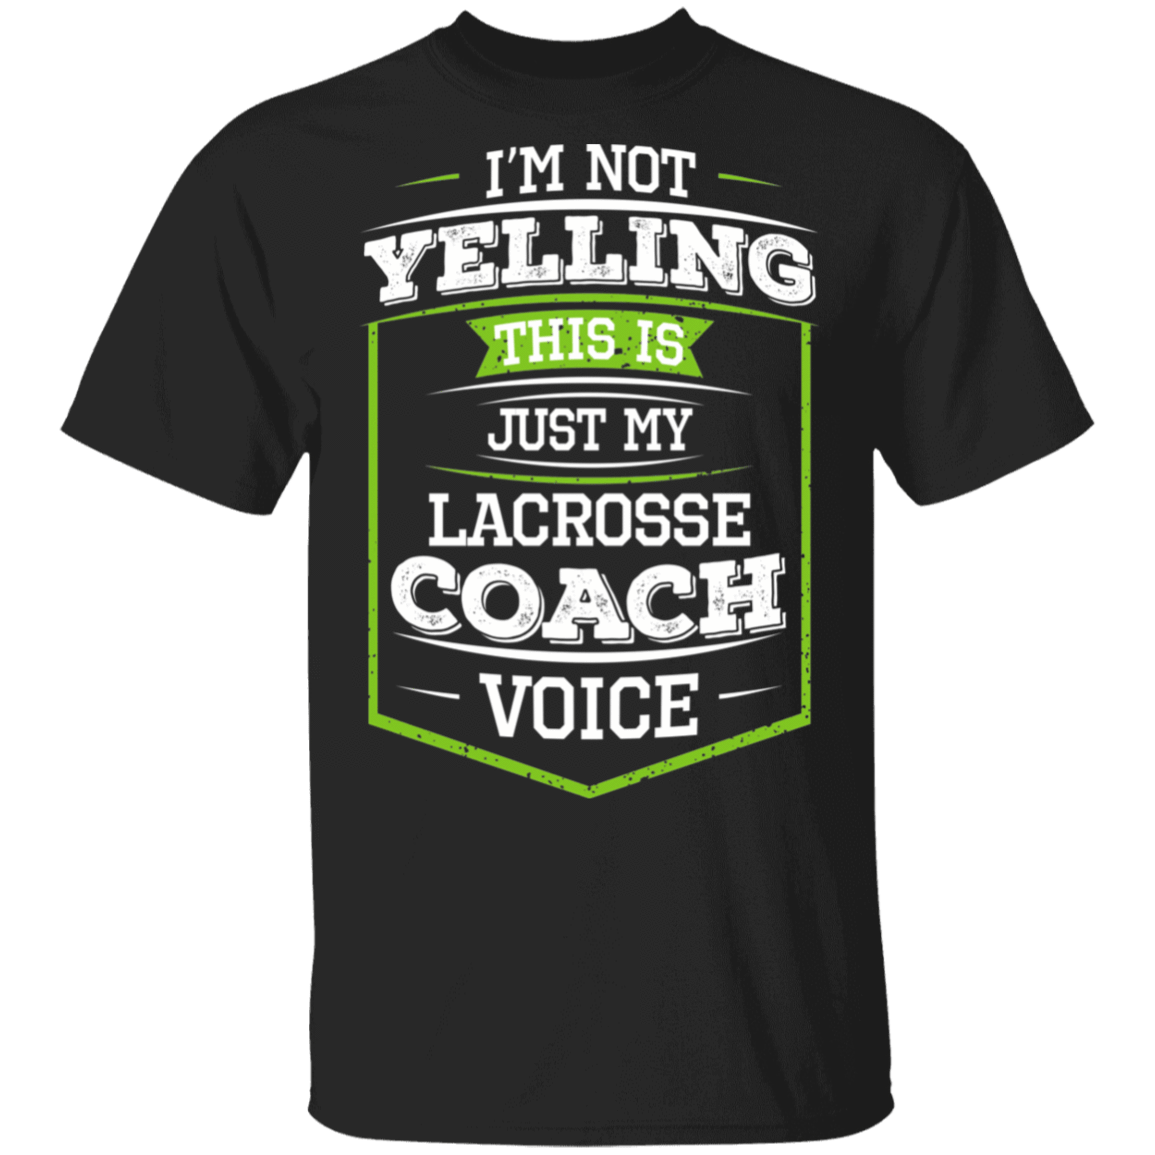 I'm Not Yelling This Is Just My Lacrosse Coach Voice T-Shirts, Hoodies 1049-9953-84915435-48144 - Tee Ript